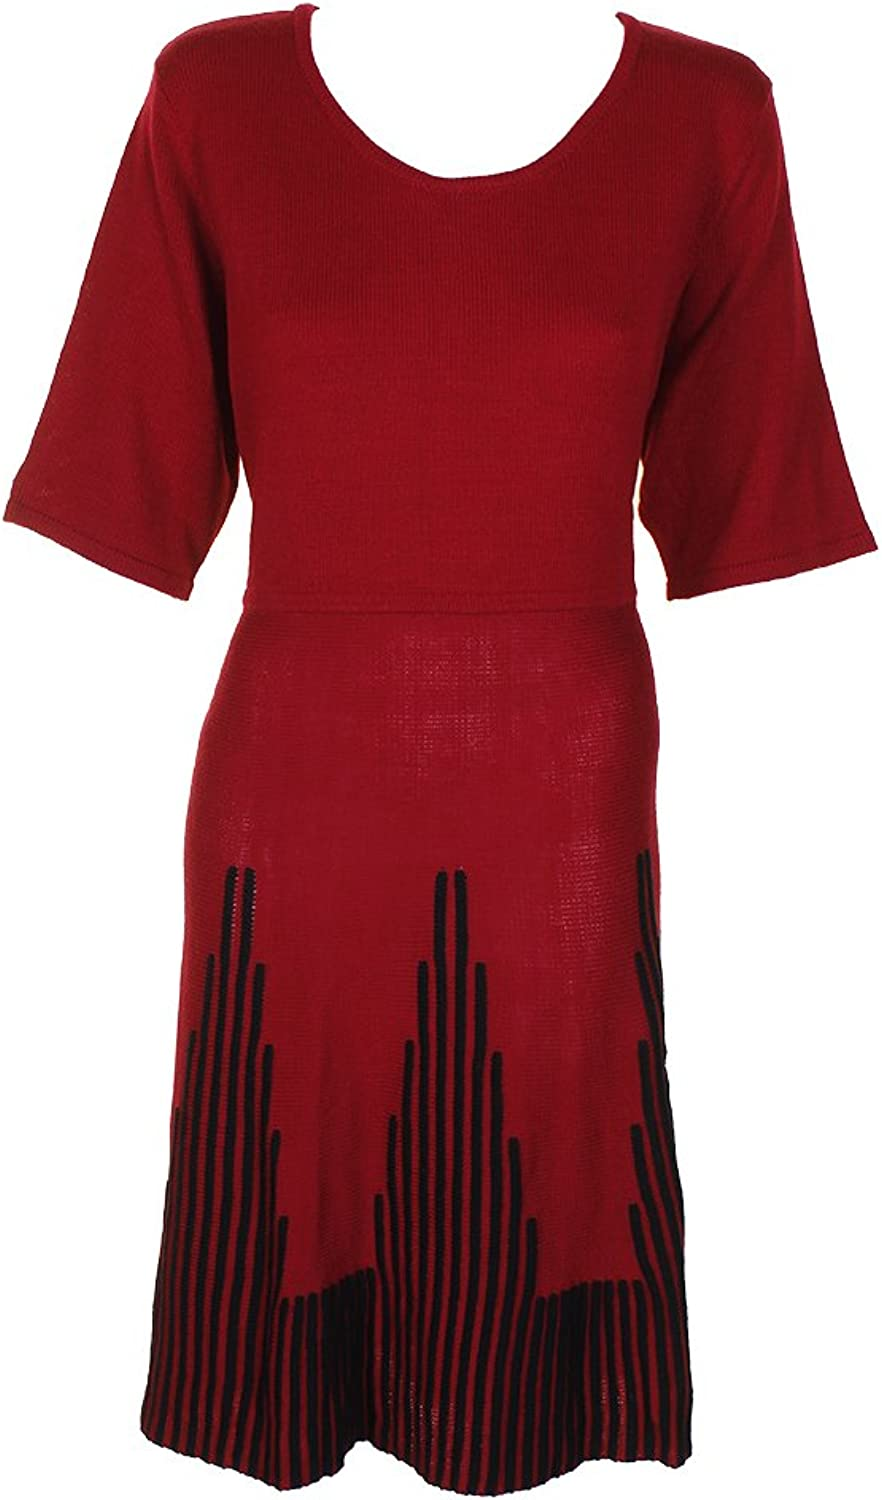 NY Collection Womens Plus Fit & Flare KneeLength Sweaterdress